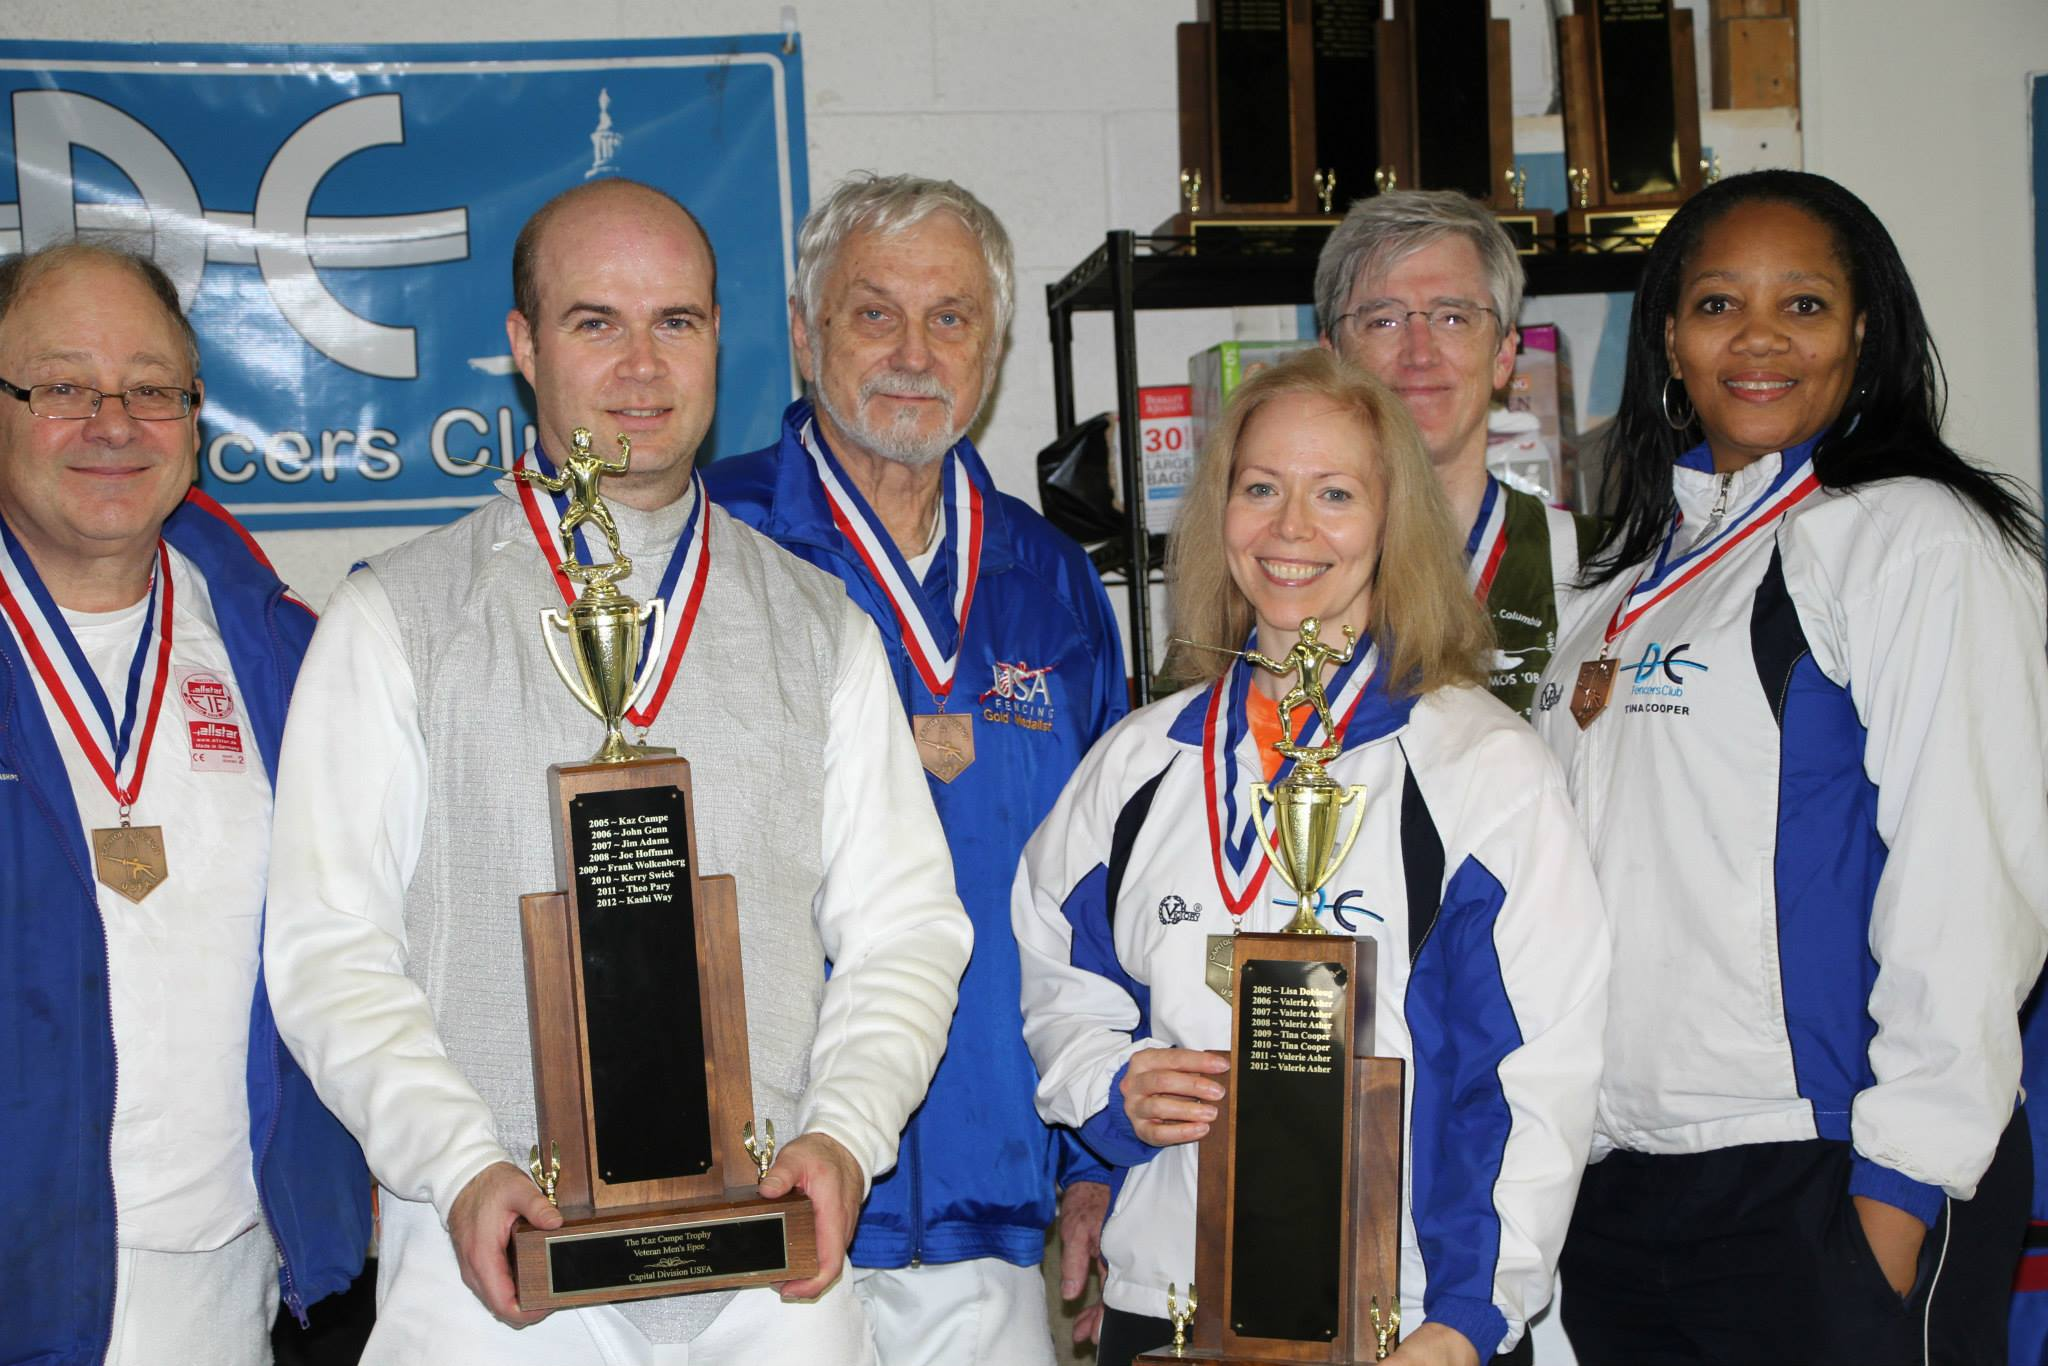 From L-R, Theo Pary, Kashi Way, Kaz Campe, Sally Gifford, Stephen Biddle, and Tina Cooper, among the medalists for the Tom Wright epee event.